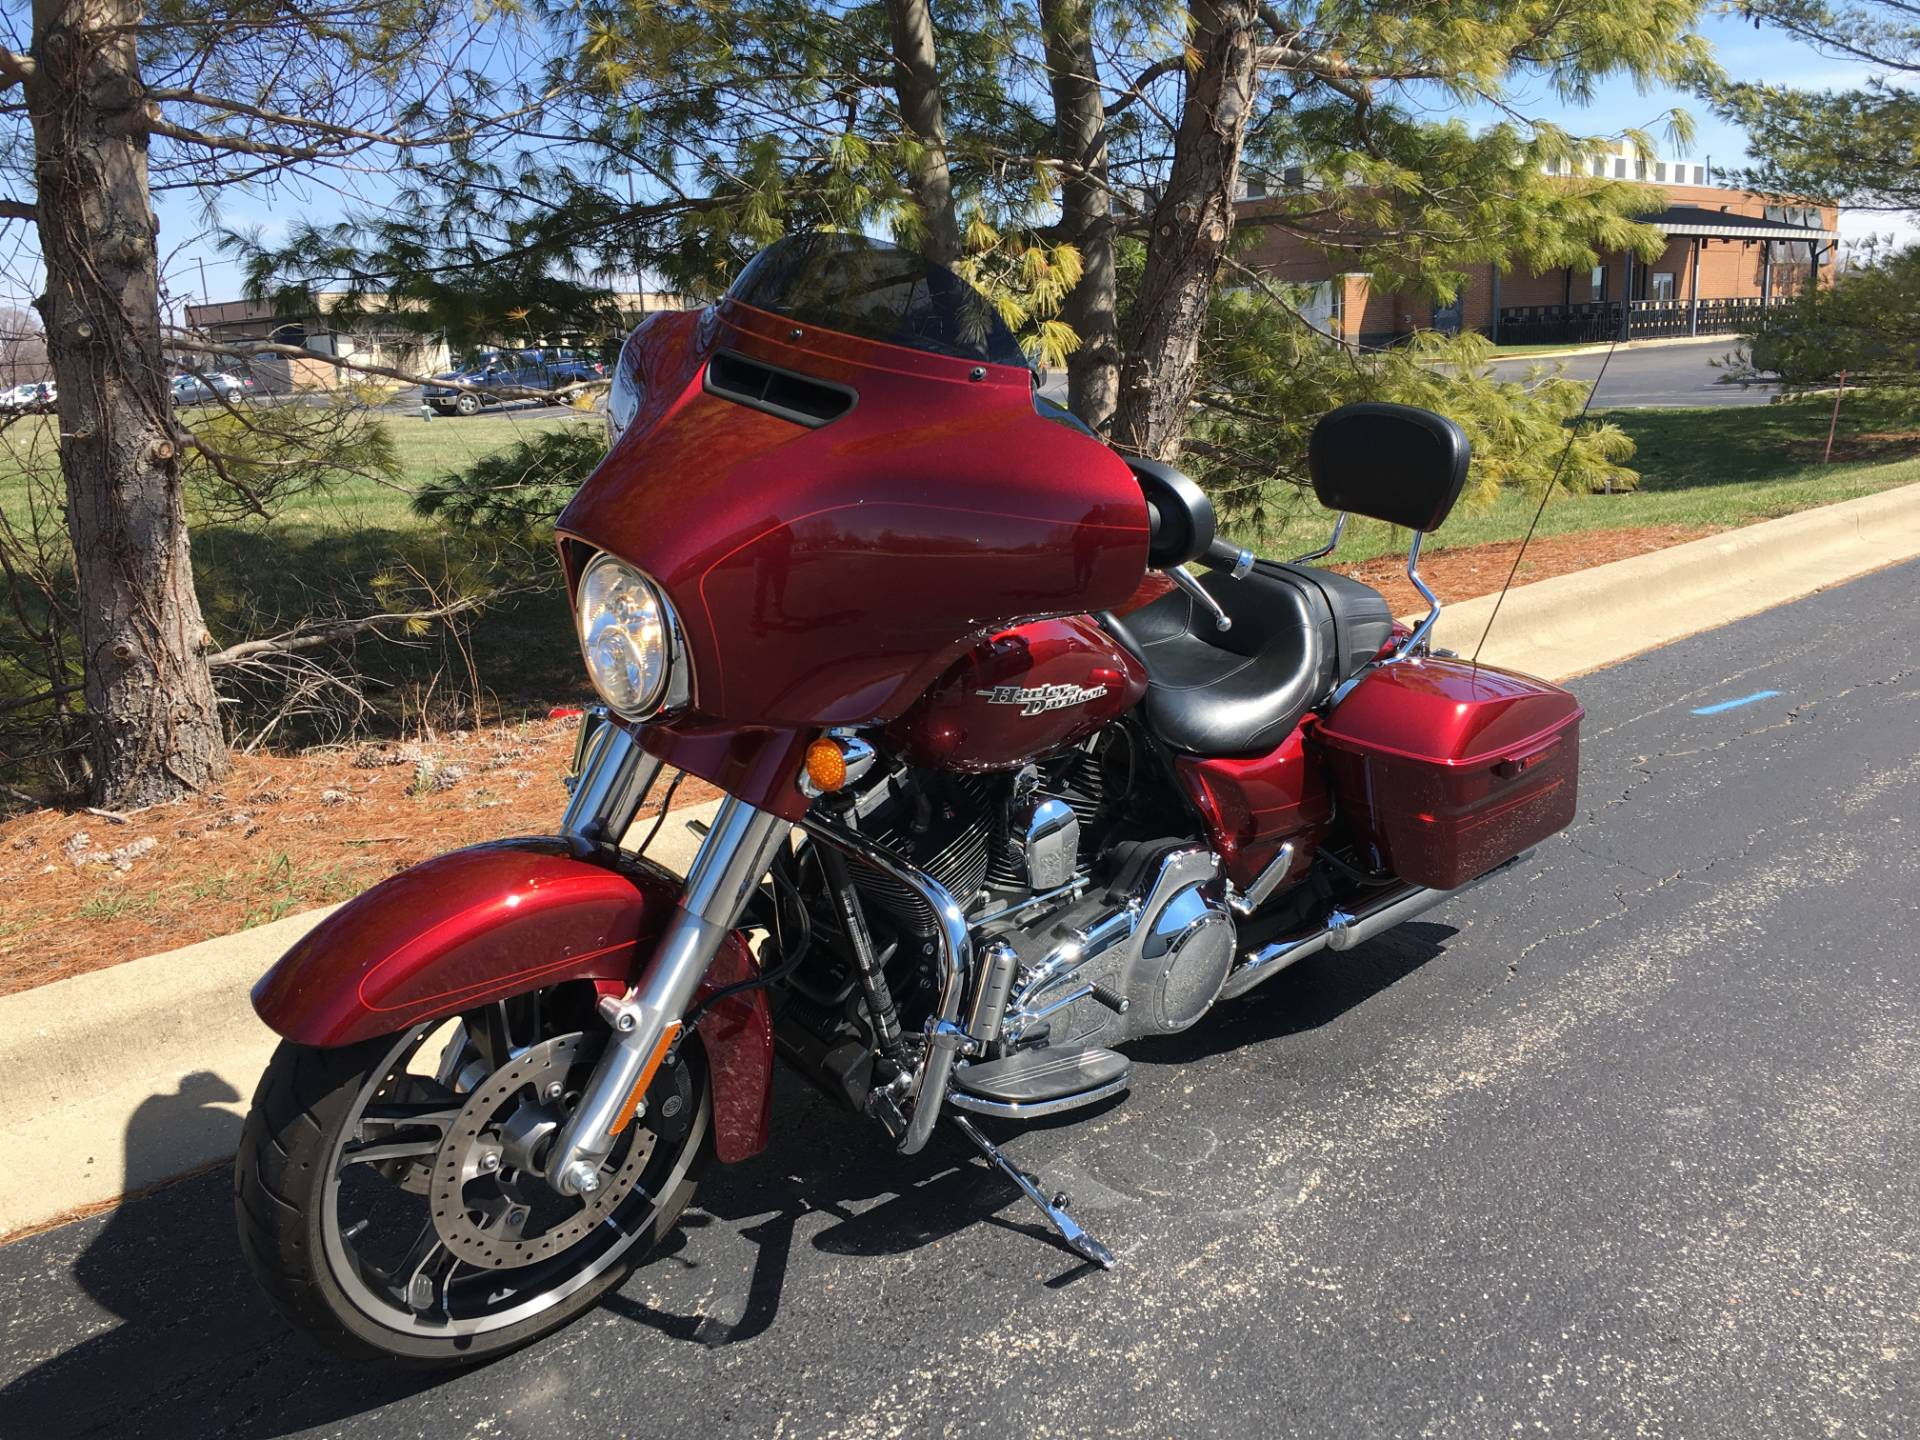 2016 Harley-Davidson Street Glide Special in Forsyth, Illinois - Photo 5